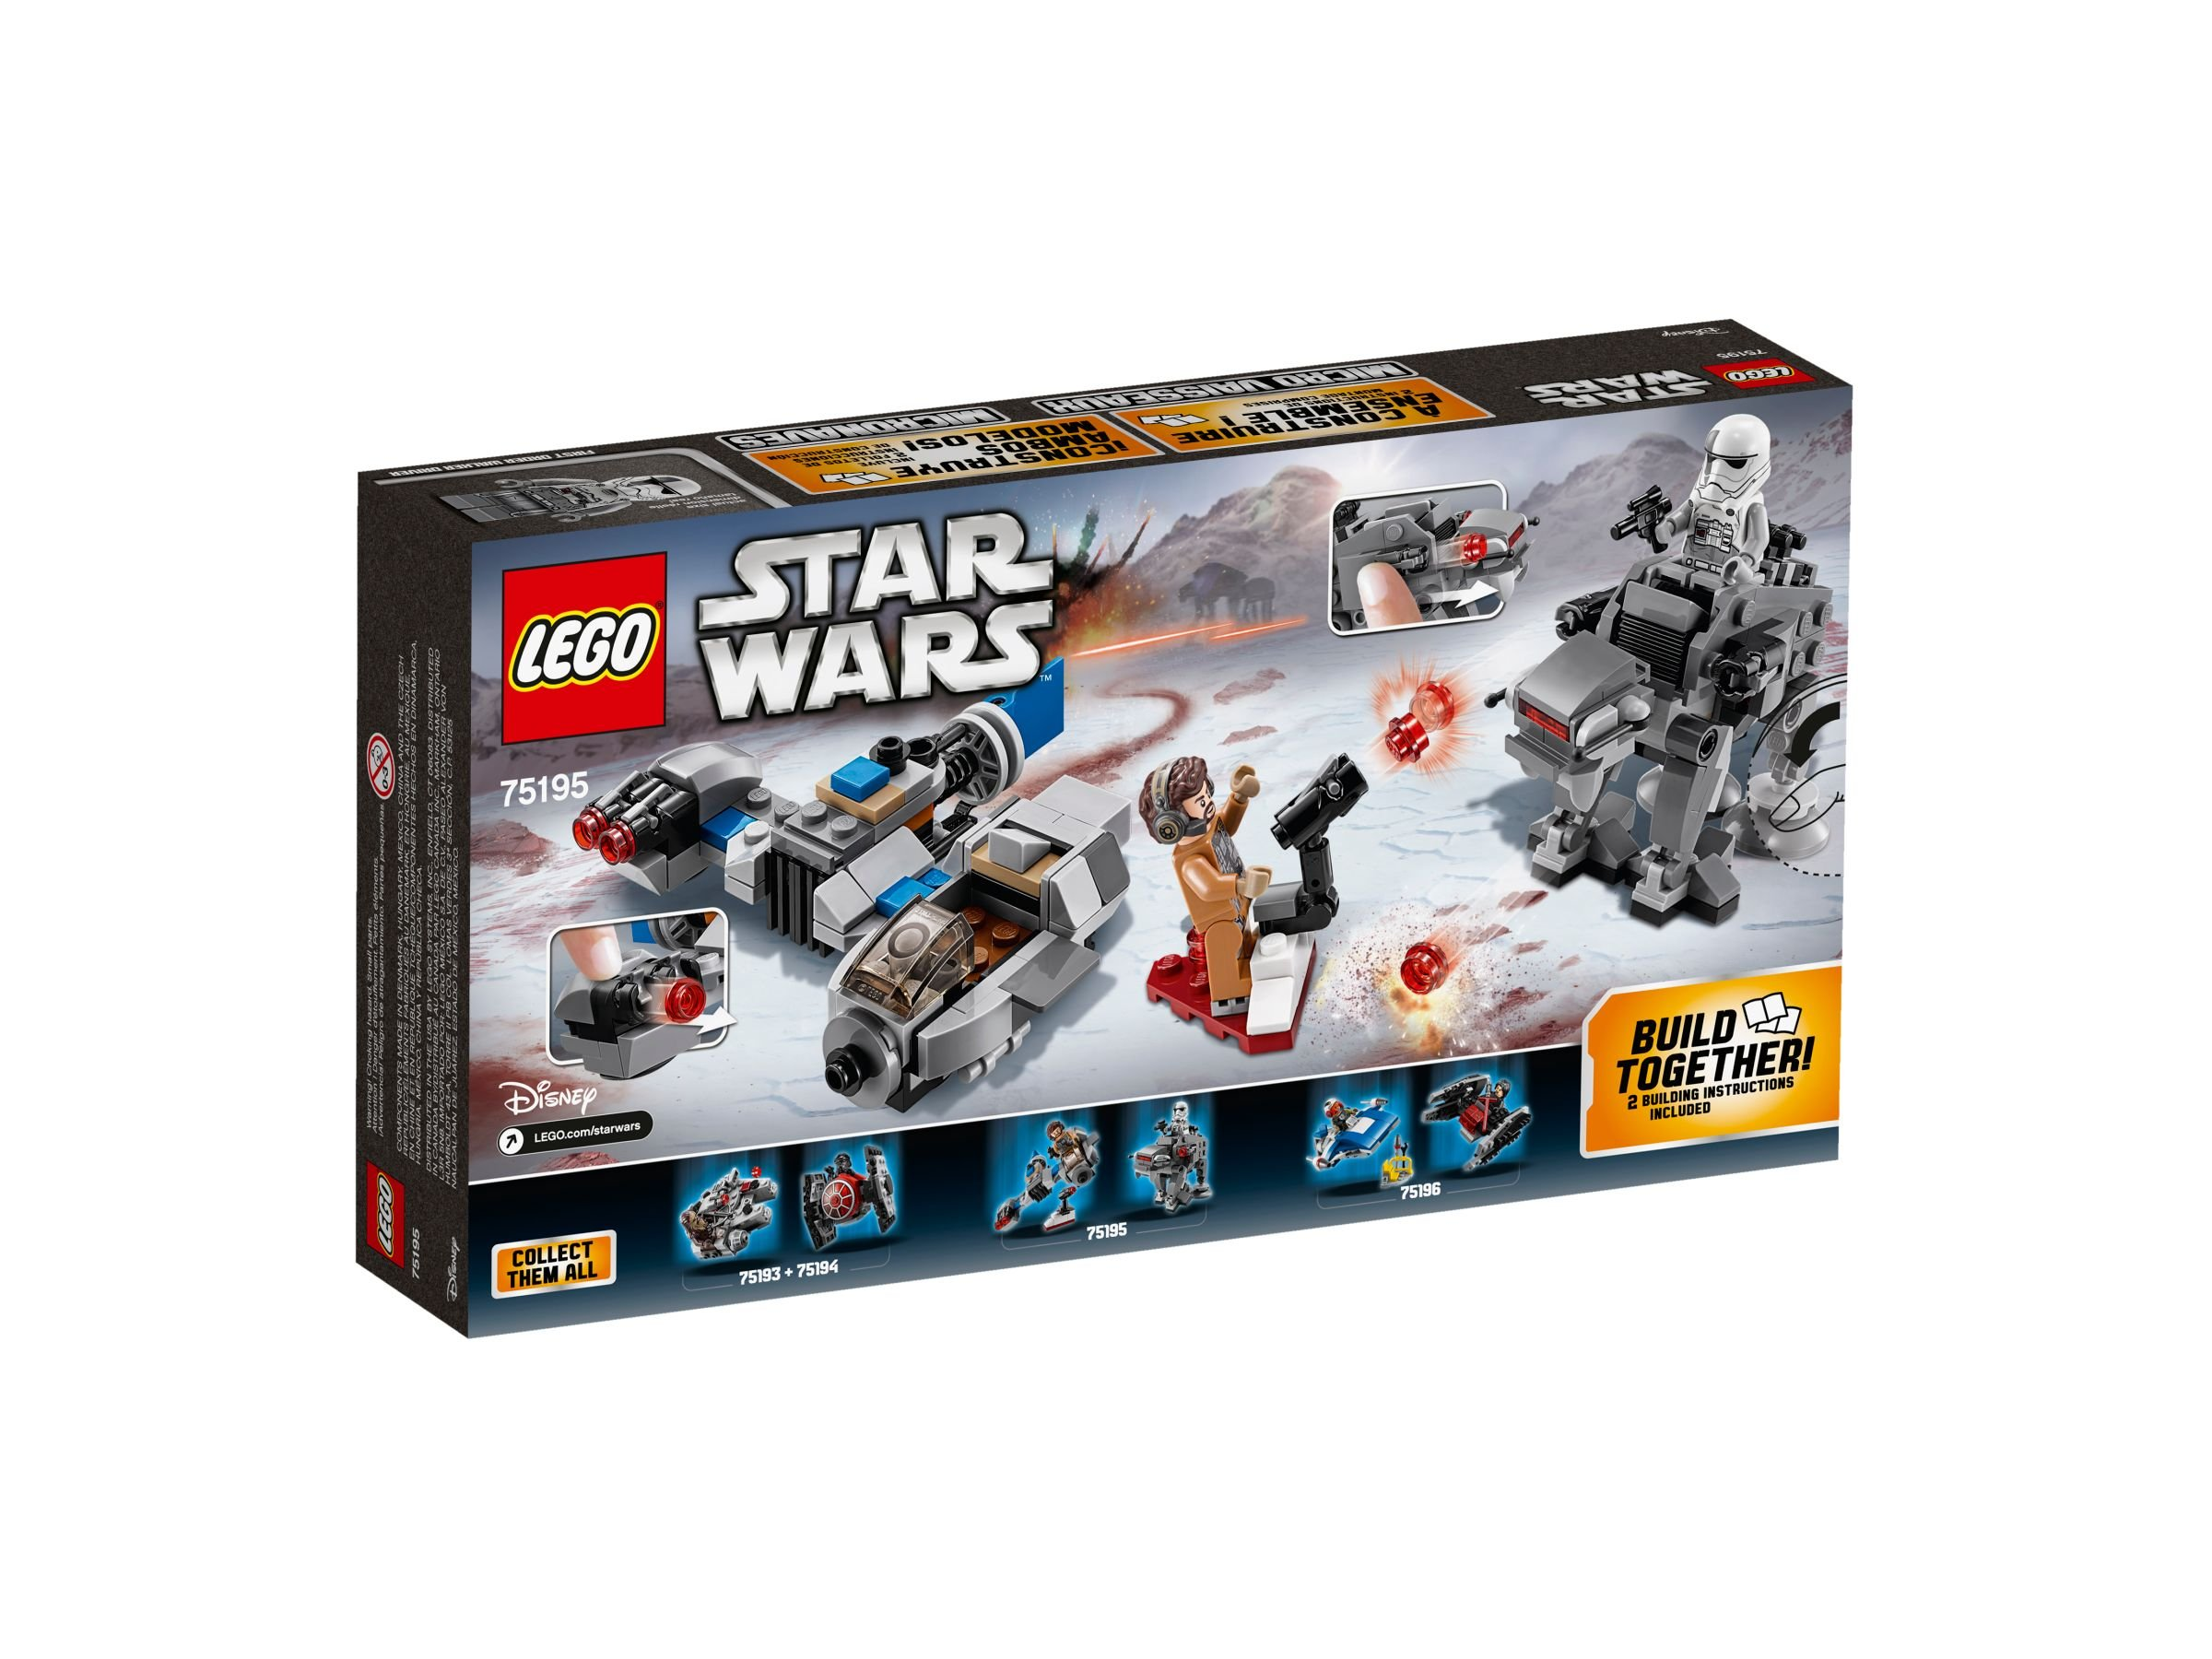 LEGO Star Wars 75195 Ski Speeder™ vs. First Order Walker™ Microfighters LEGO_75195_alt2.jpg